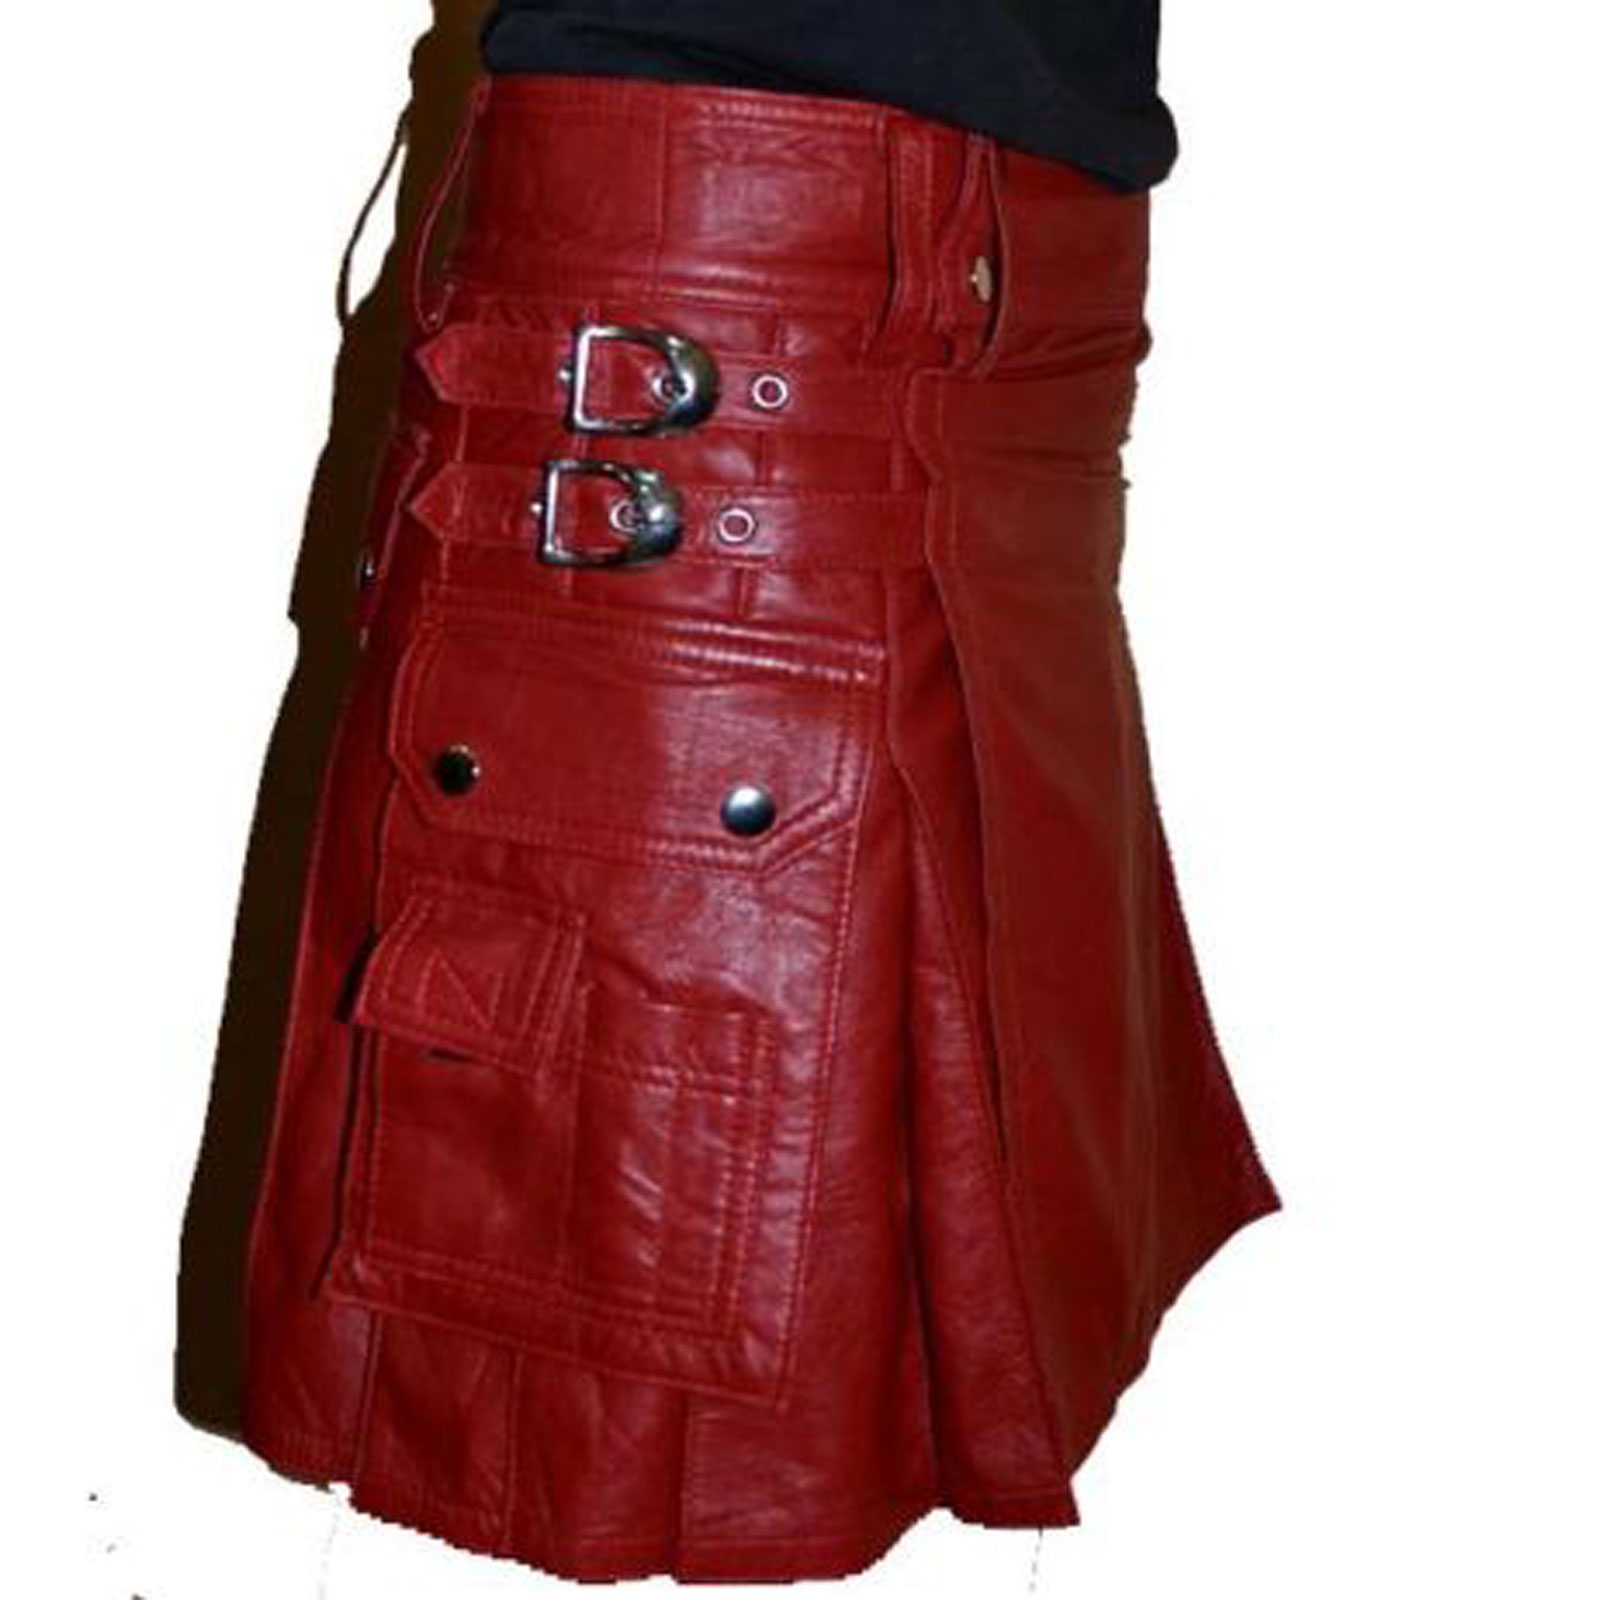 leather-gladiator-scottish-warrior-pleated-kilt-side